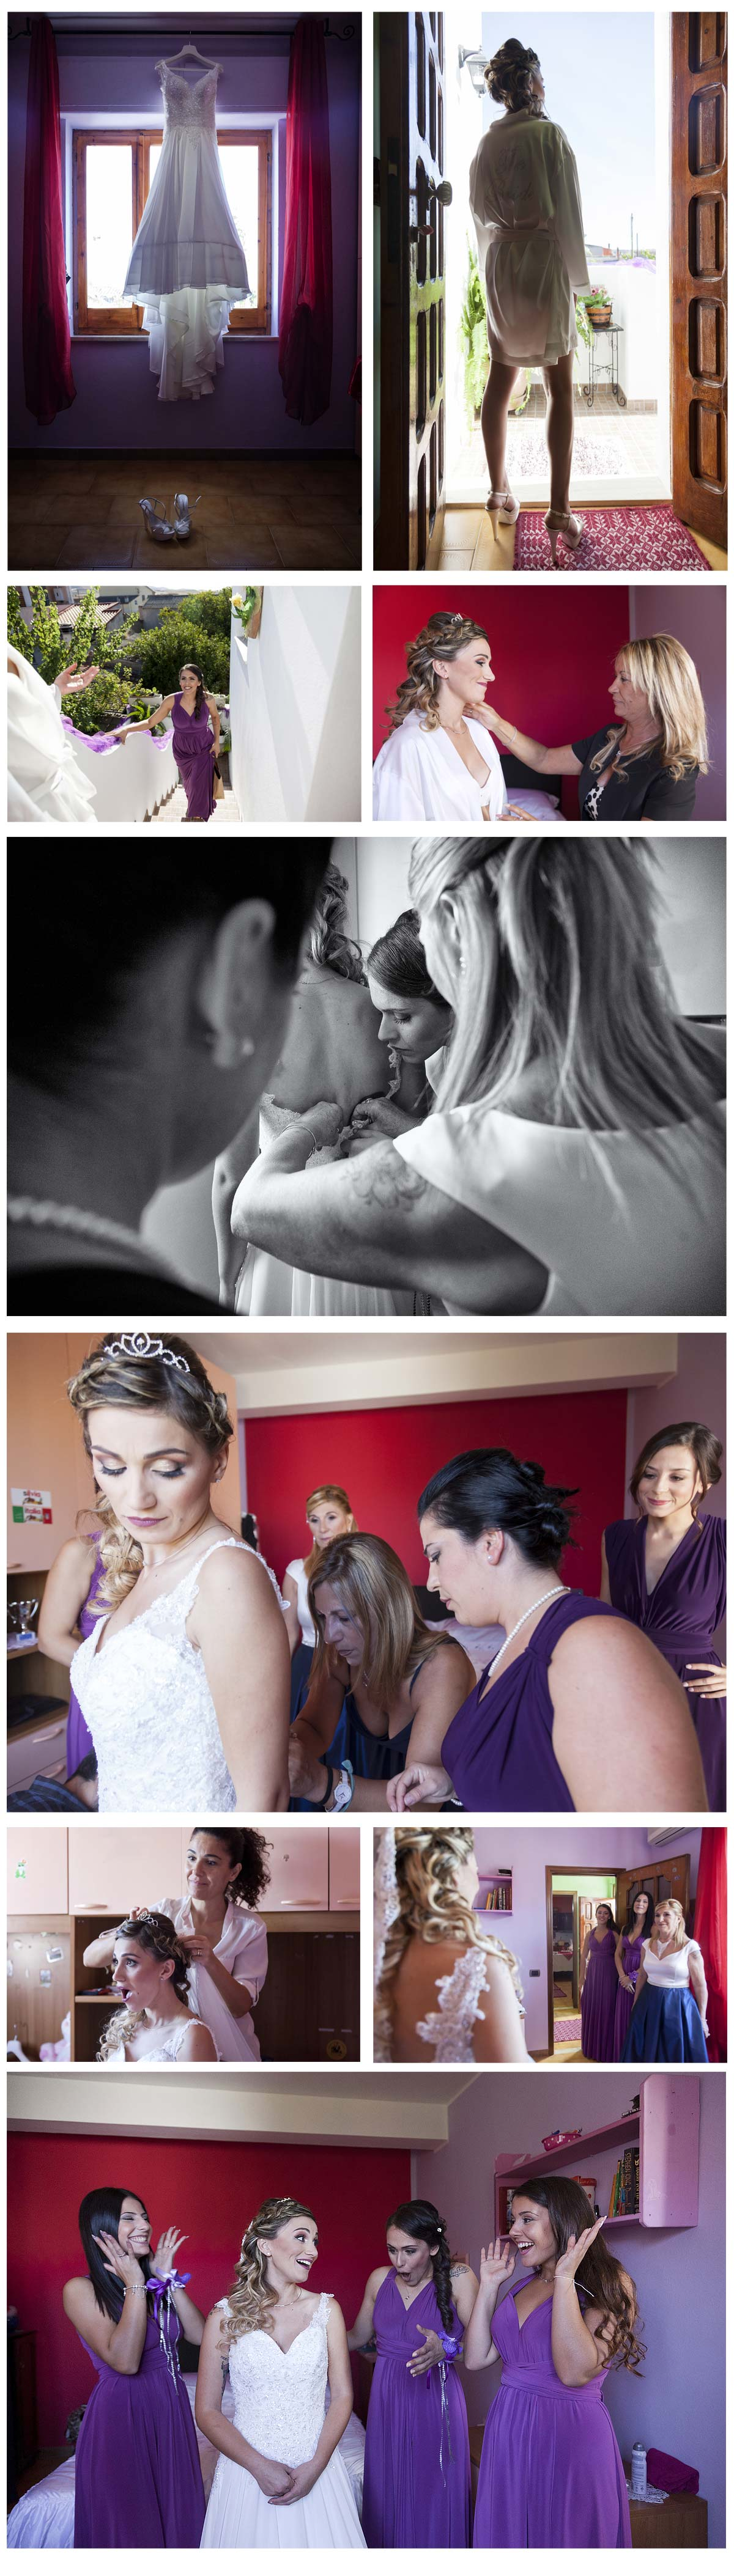 reportage-matrimonio-wedding-cagliari-sardegna-italia-wedding-stories